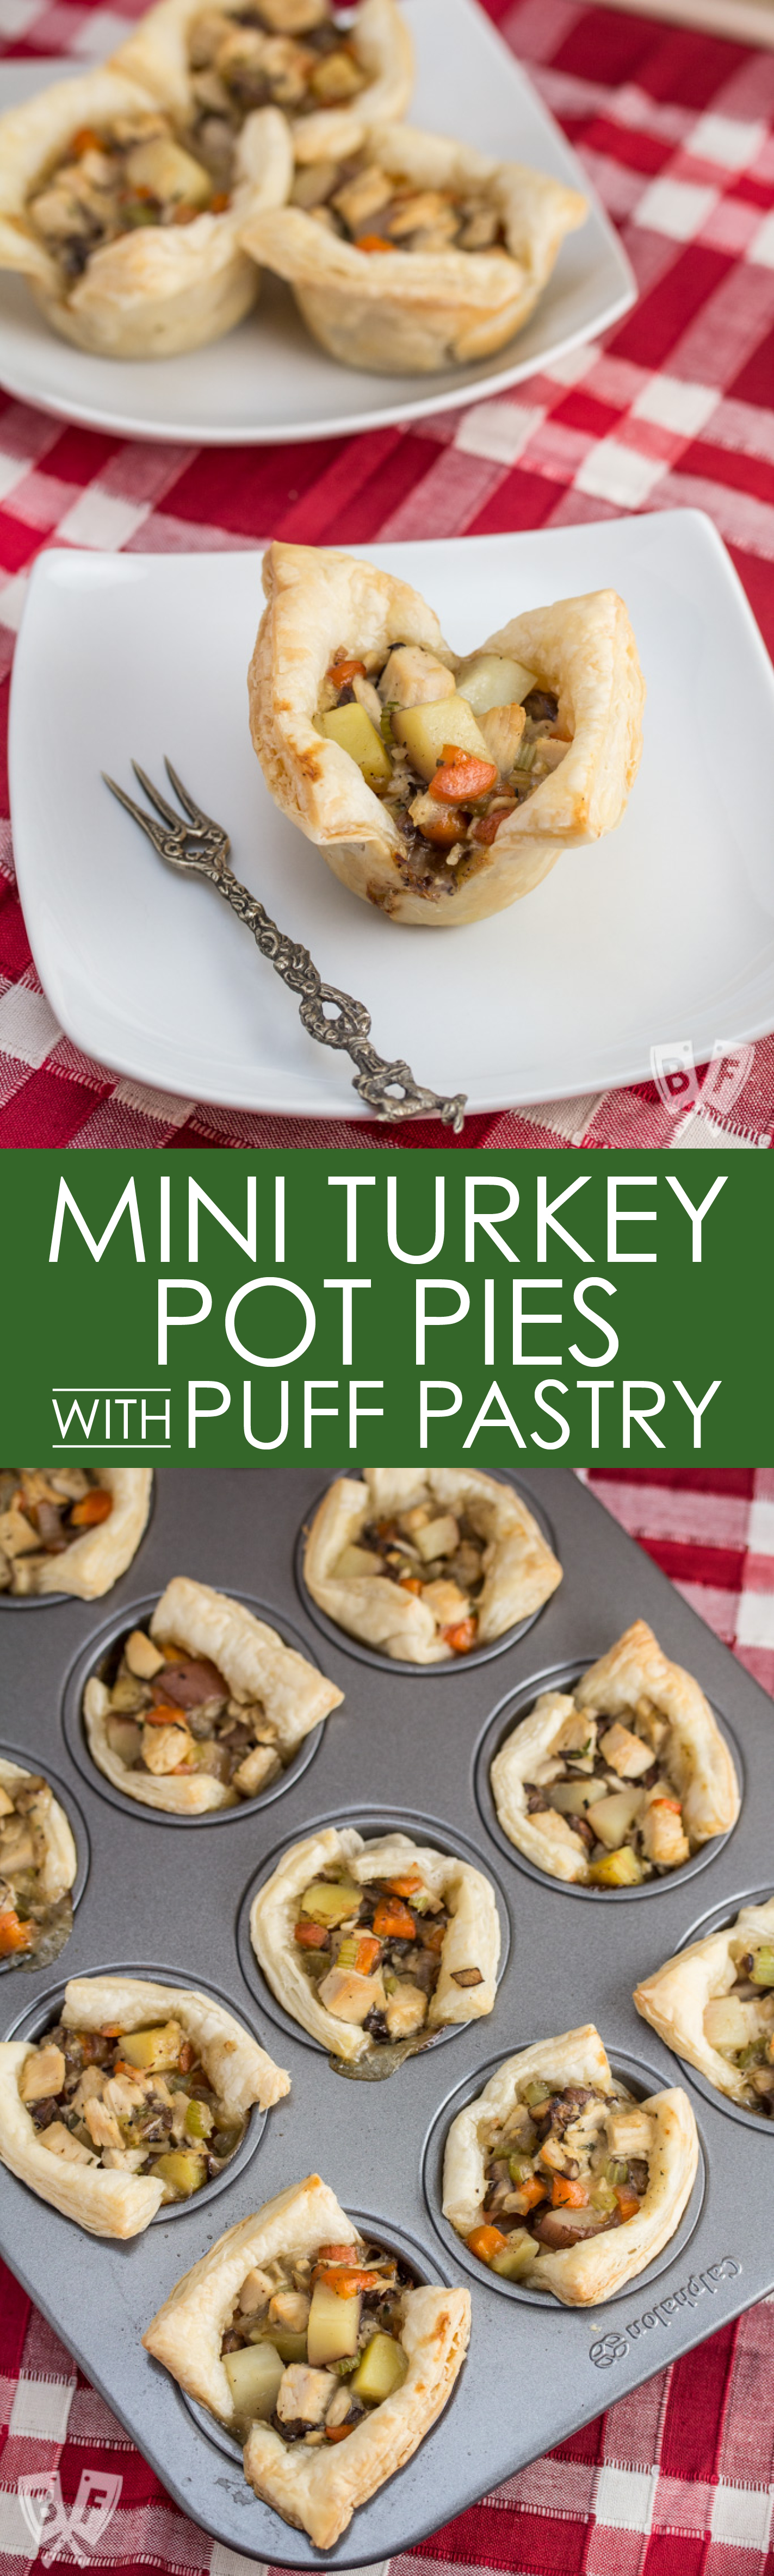 Puff pastry helps you make the most of your holiday leftovers with these easy bite-sized turkey pot pies. Perfect for Thanksgiving, Christmas or Easter!